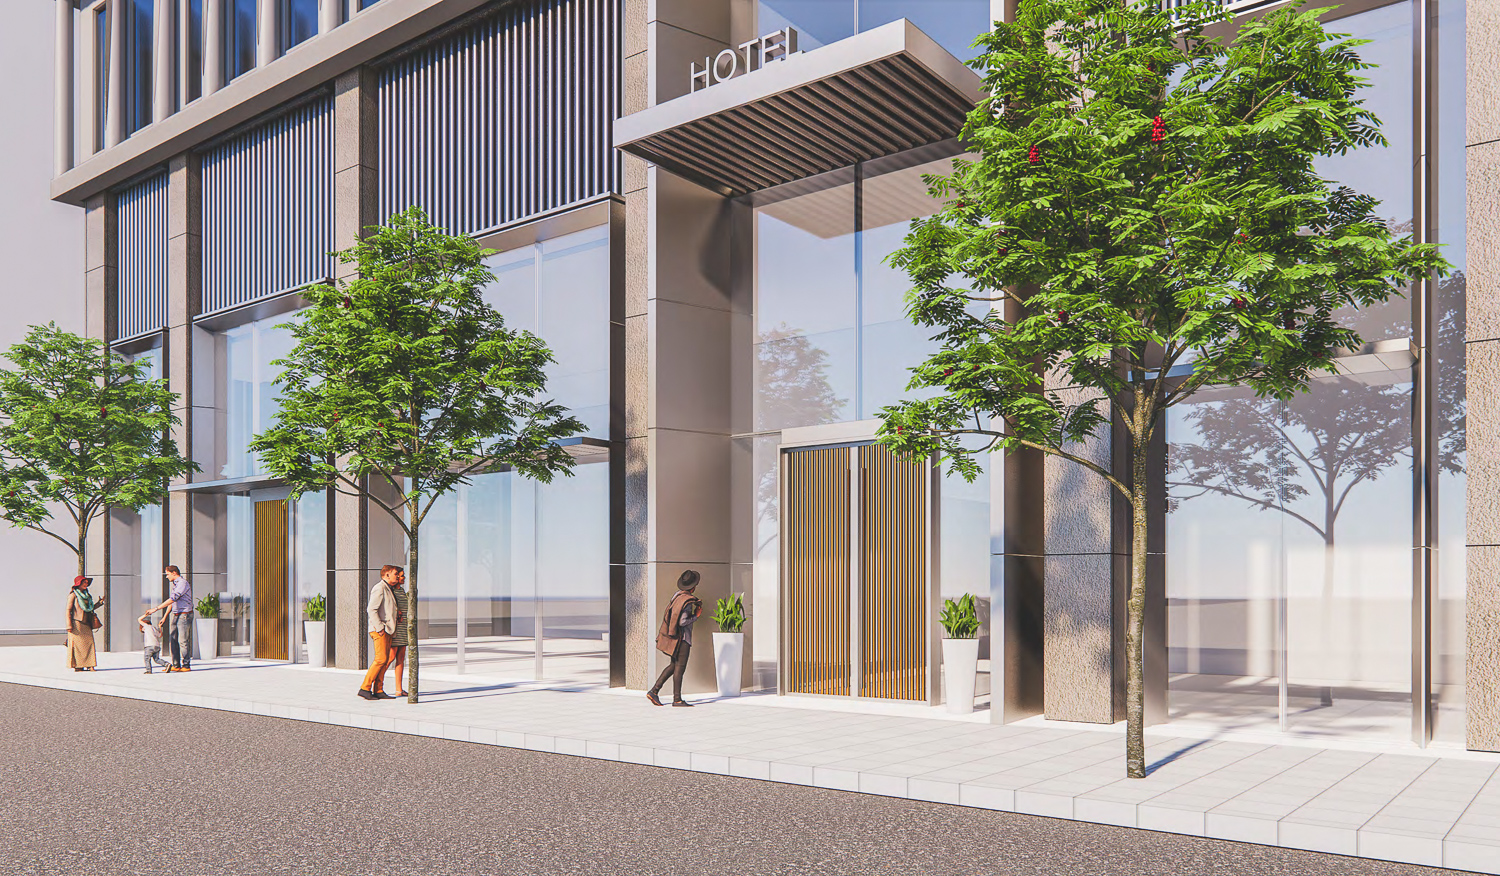 530 Sansome Street hotel lobby entry, rendering by SOM